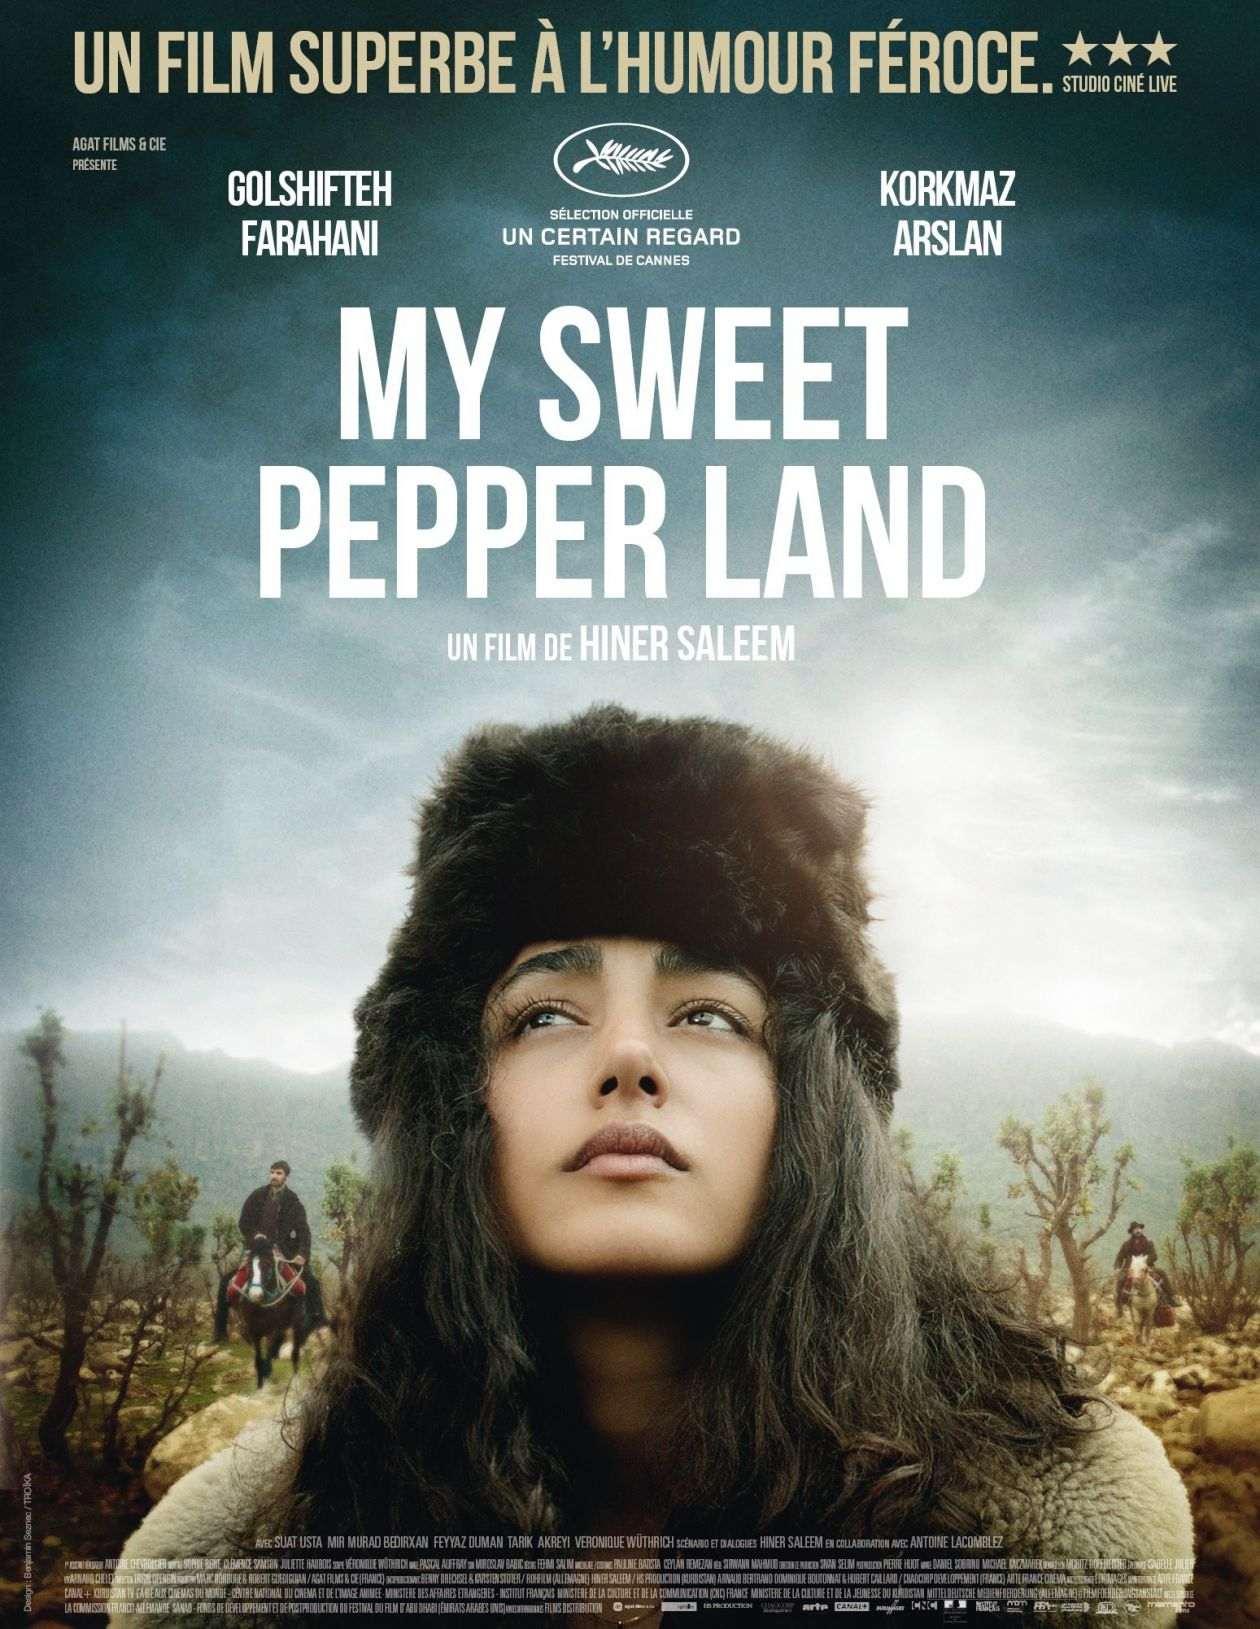 Golshifteh Farahani actress actrice comédienne | My Sweet Pepperland / Huner Saleem 2013 Movie Poster Affiche film